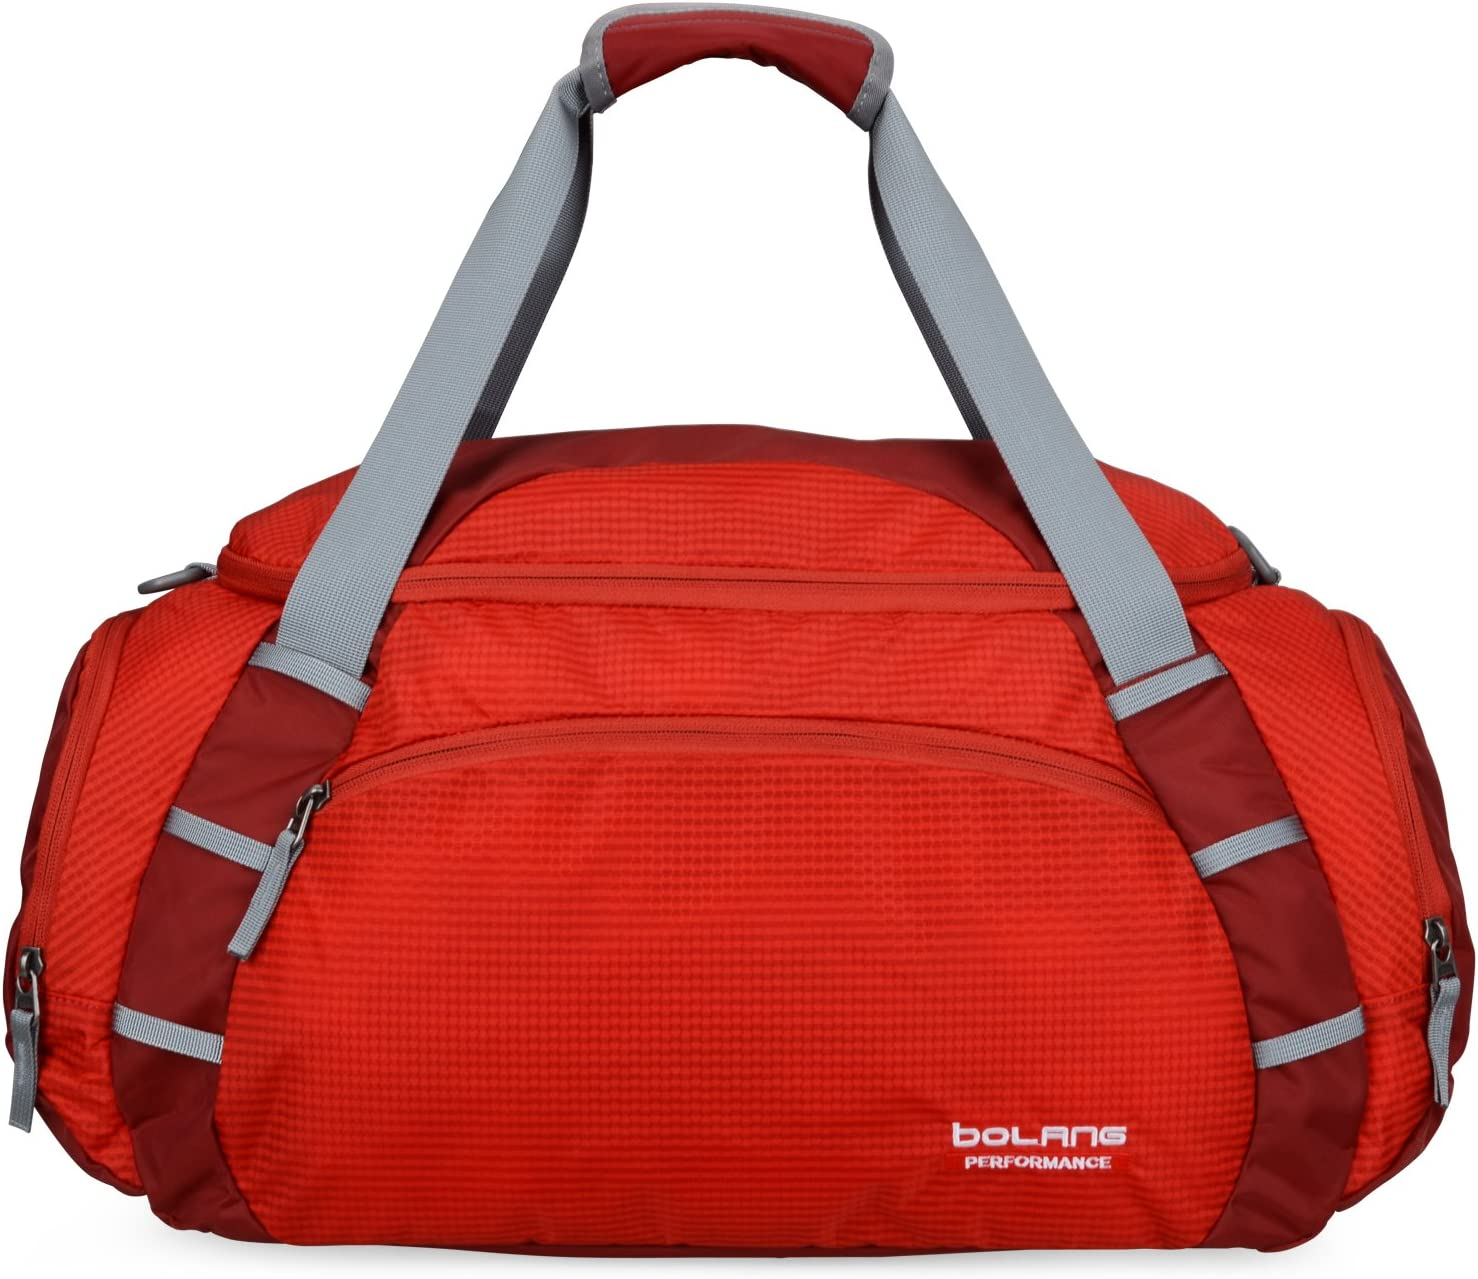 BOLANG Water Resistant Travel Duffel Tote Carry on Luggage Weekender Bag 8833 One Size, Red